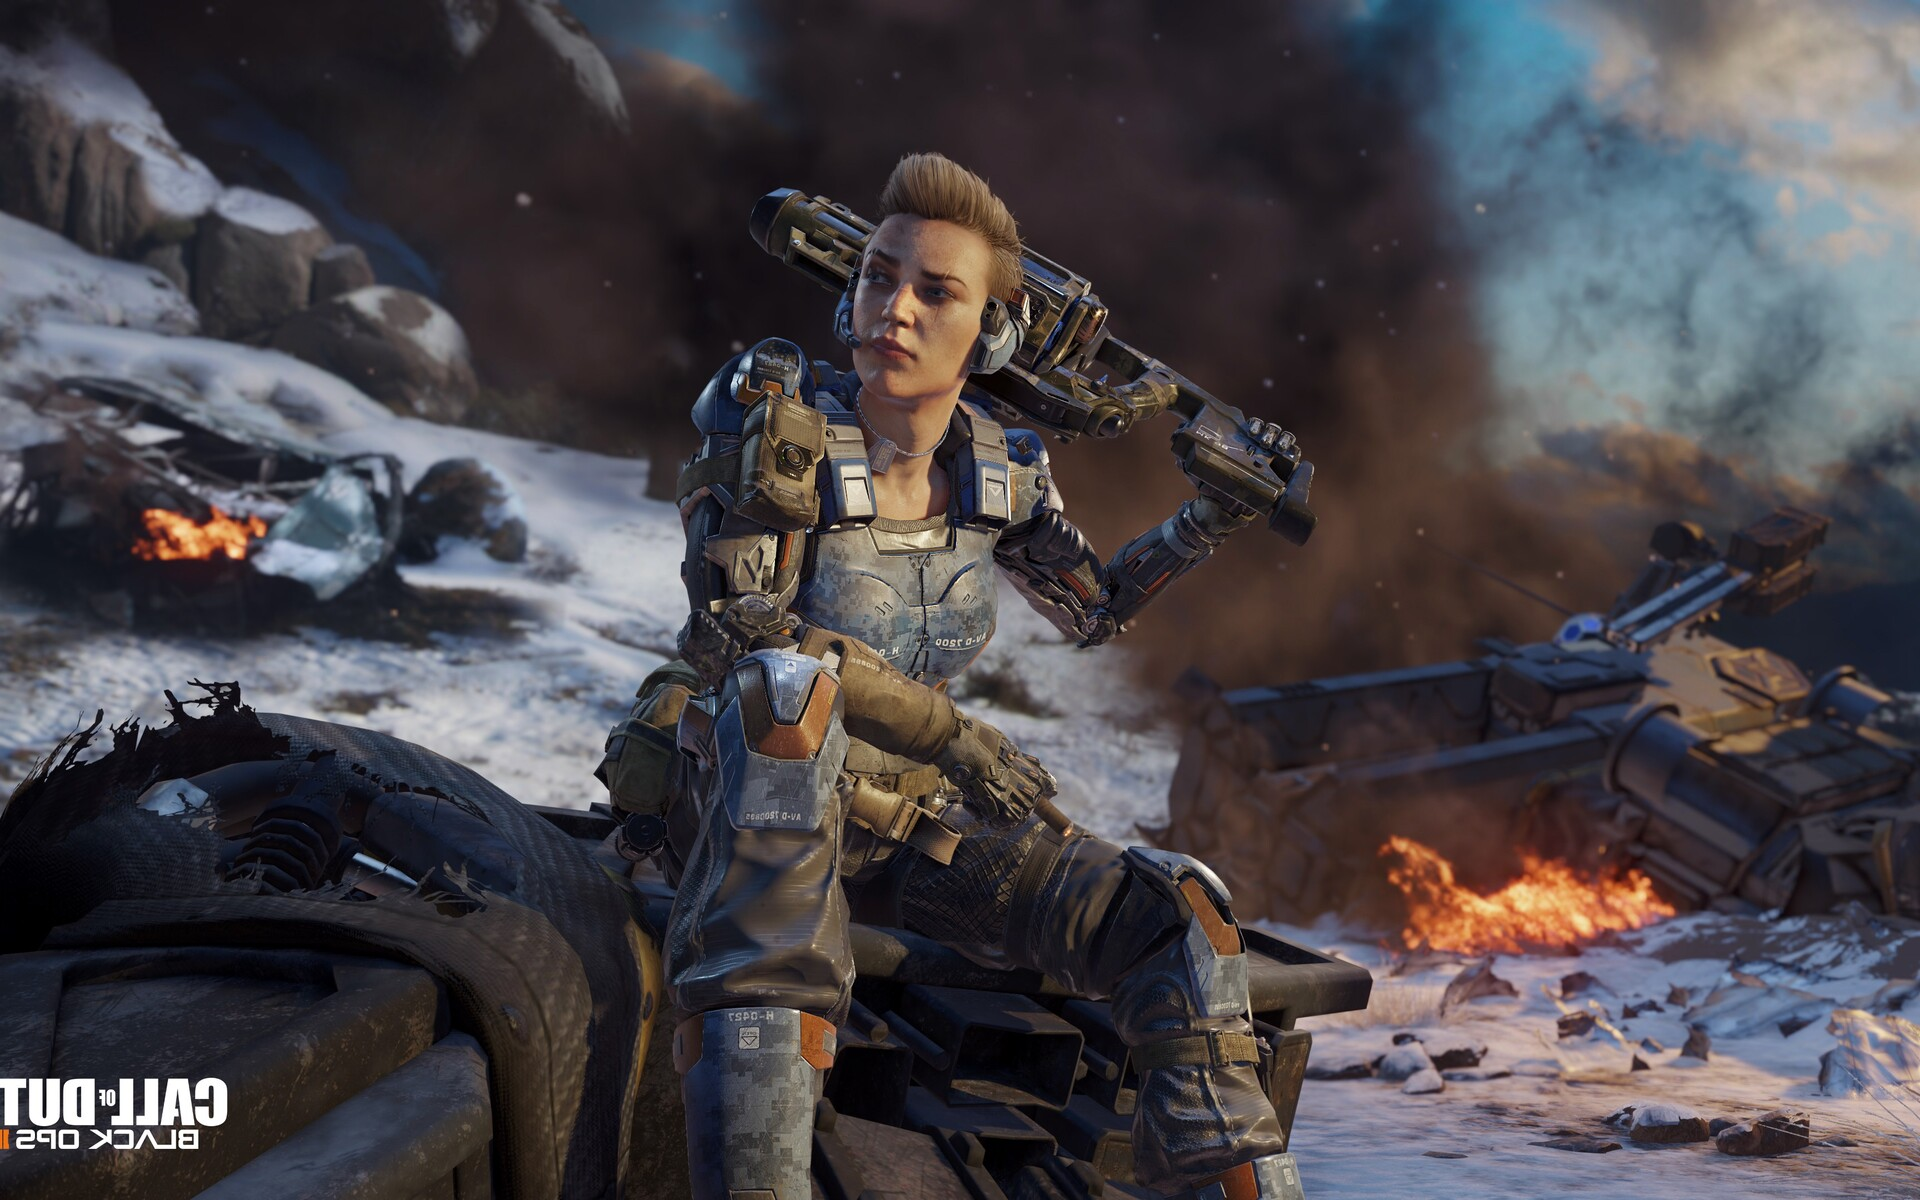 1920x1200 Call Of Duty Black Ops 3 Game 1080p Resolution Hd 4k